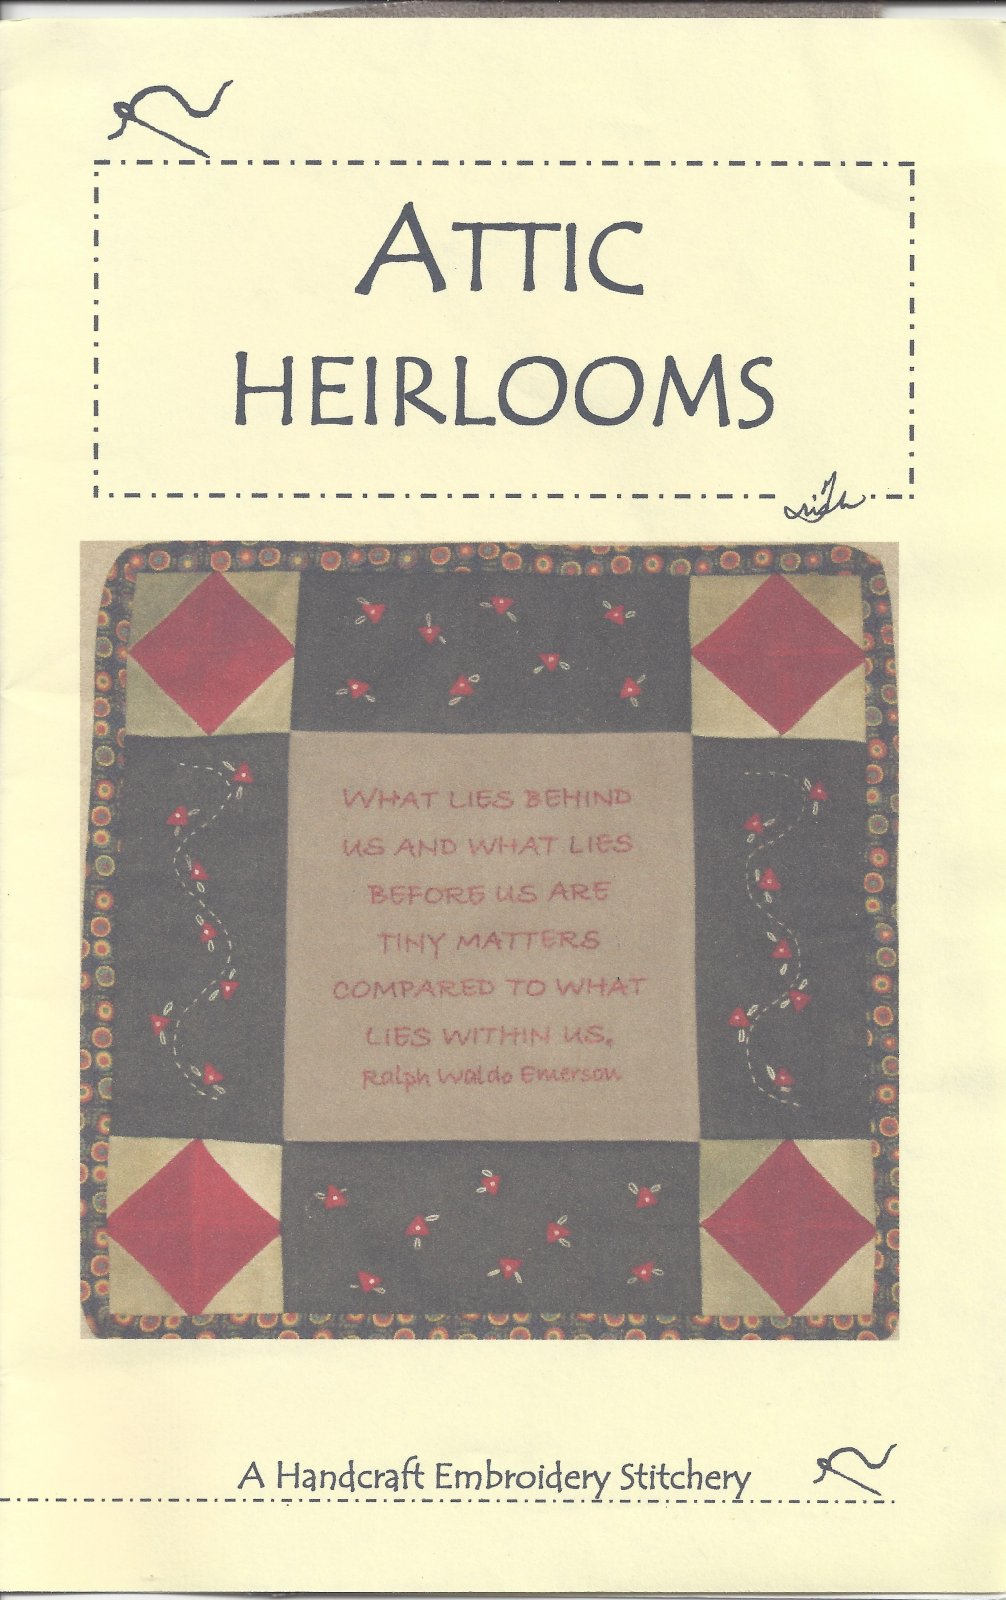 Attic Heirlooms - Embroidery Stitchery Pattern - Ralph Waldo Emerson - What Lies Behind - SA116Red